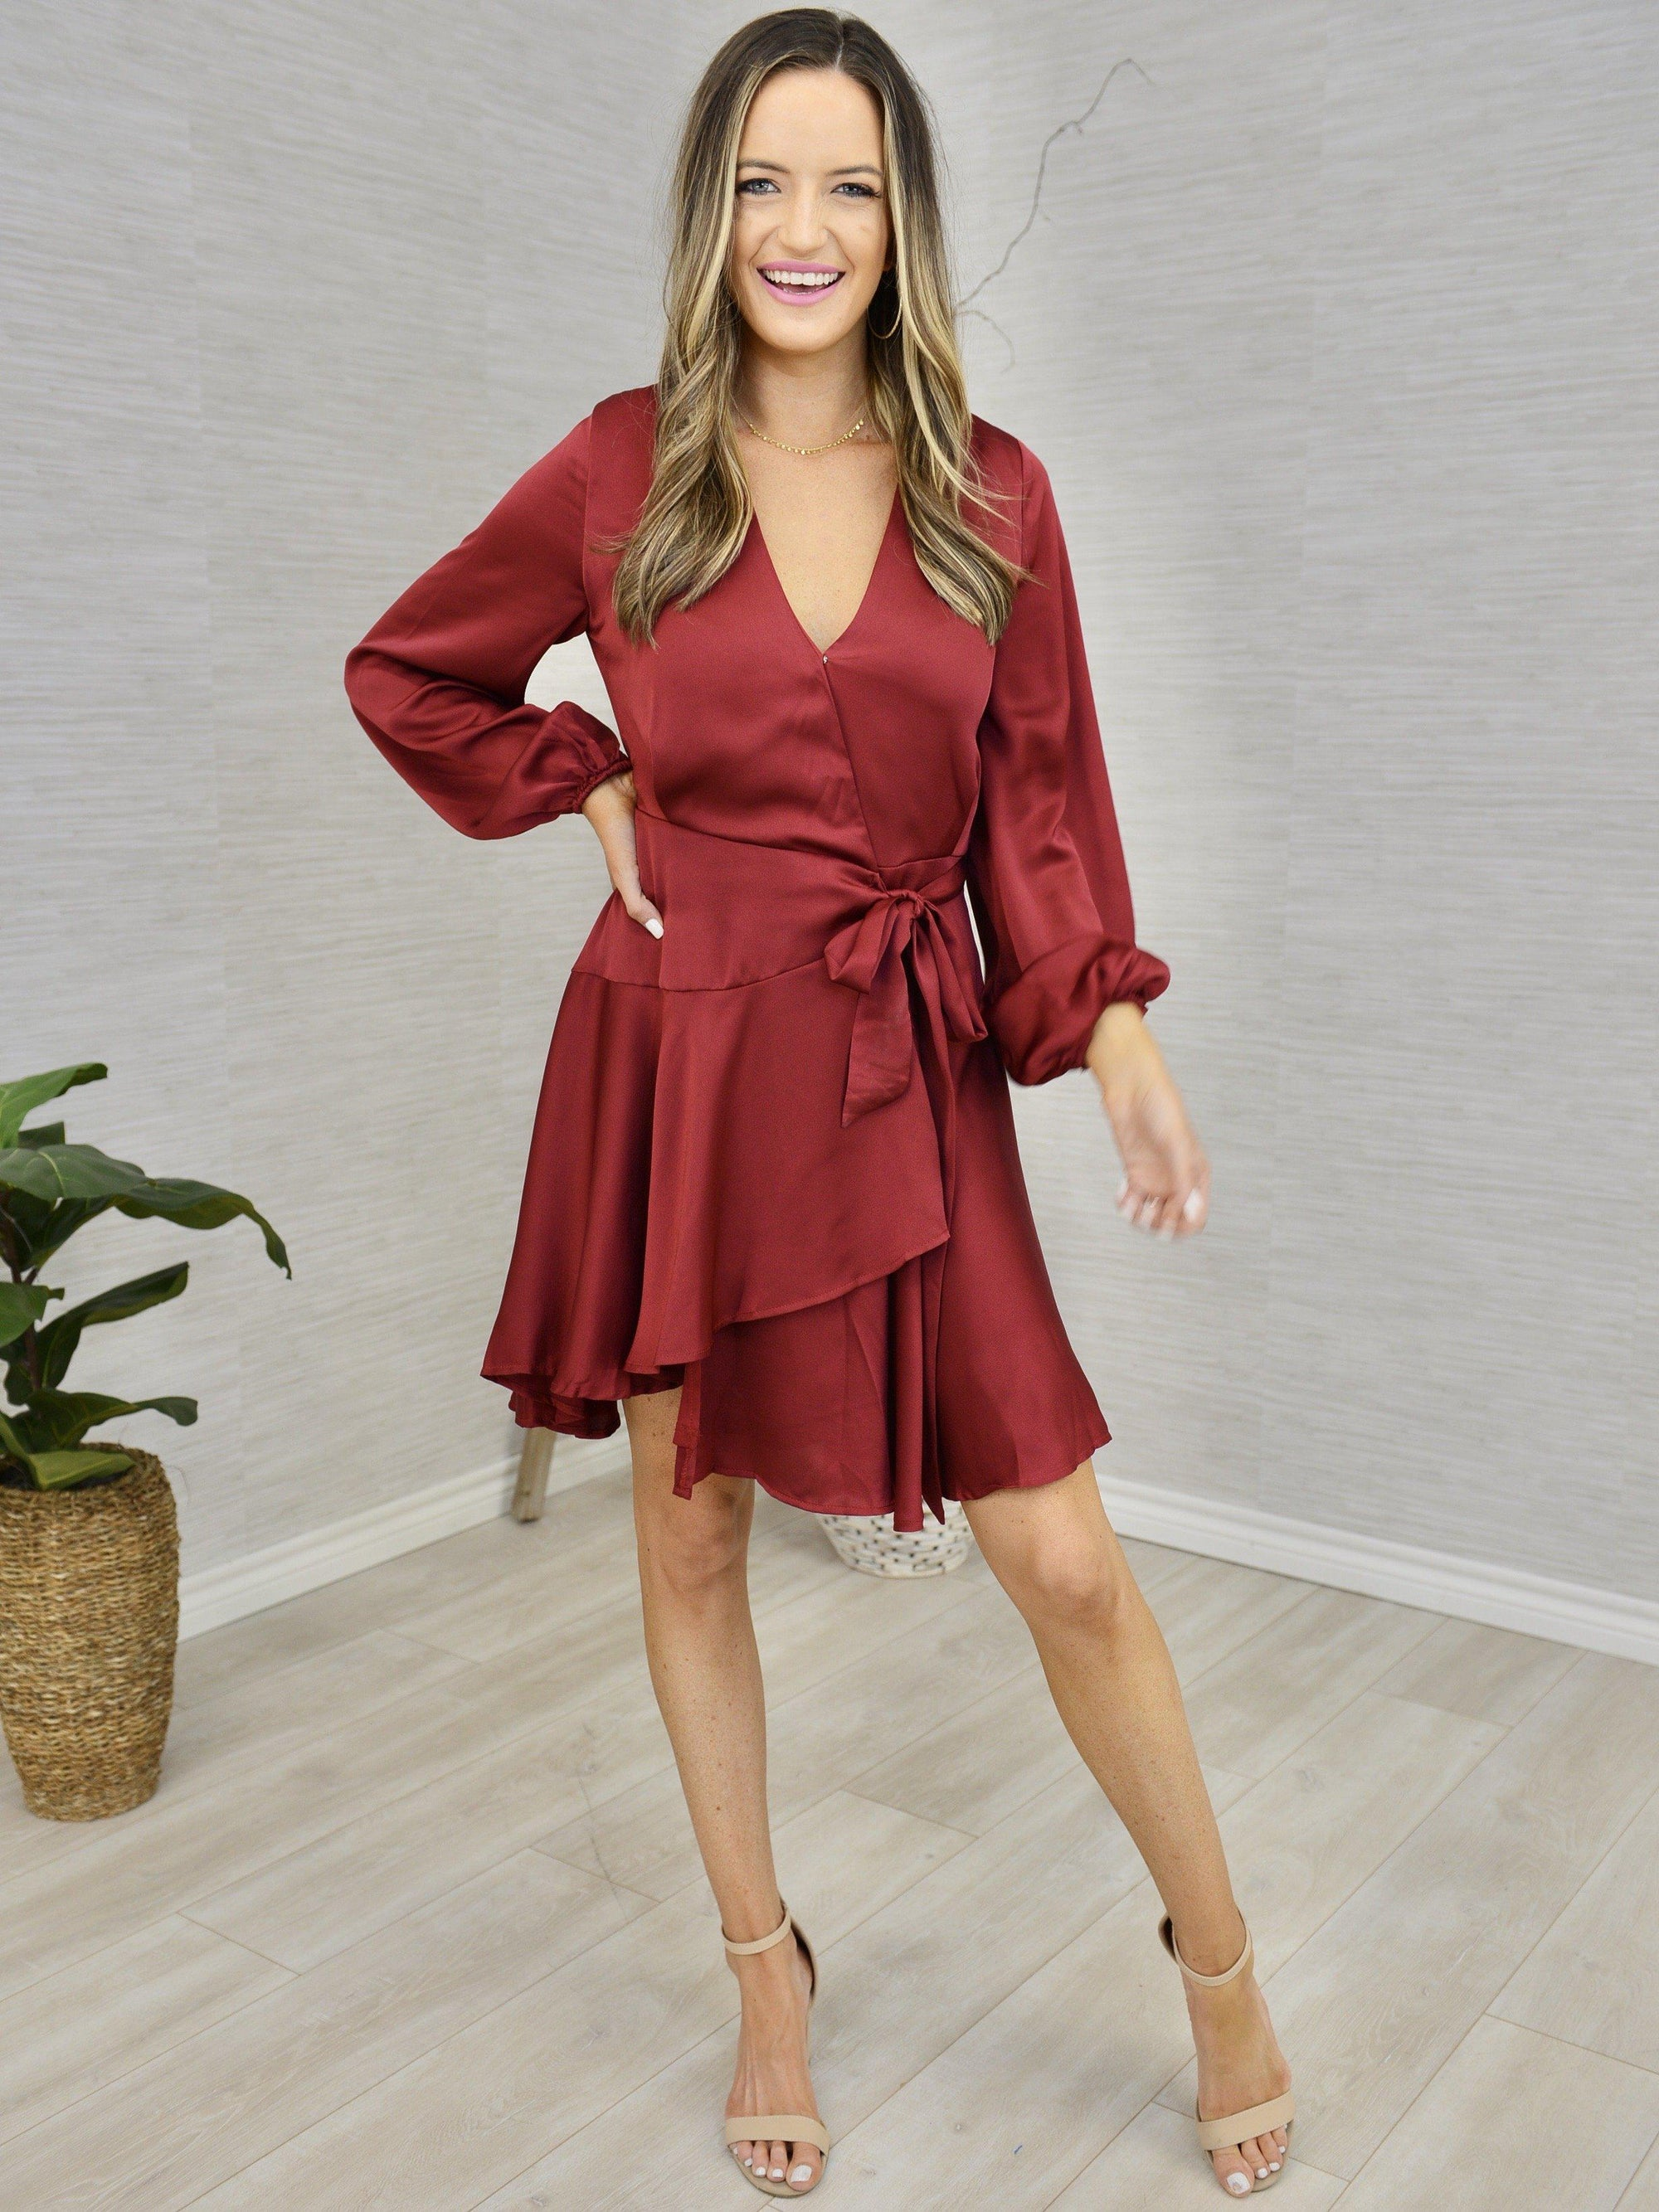 Merlot Memories Dress-Women's -New Arrivals-Runway Seven